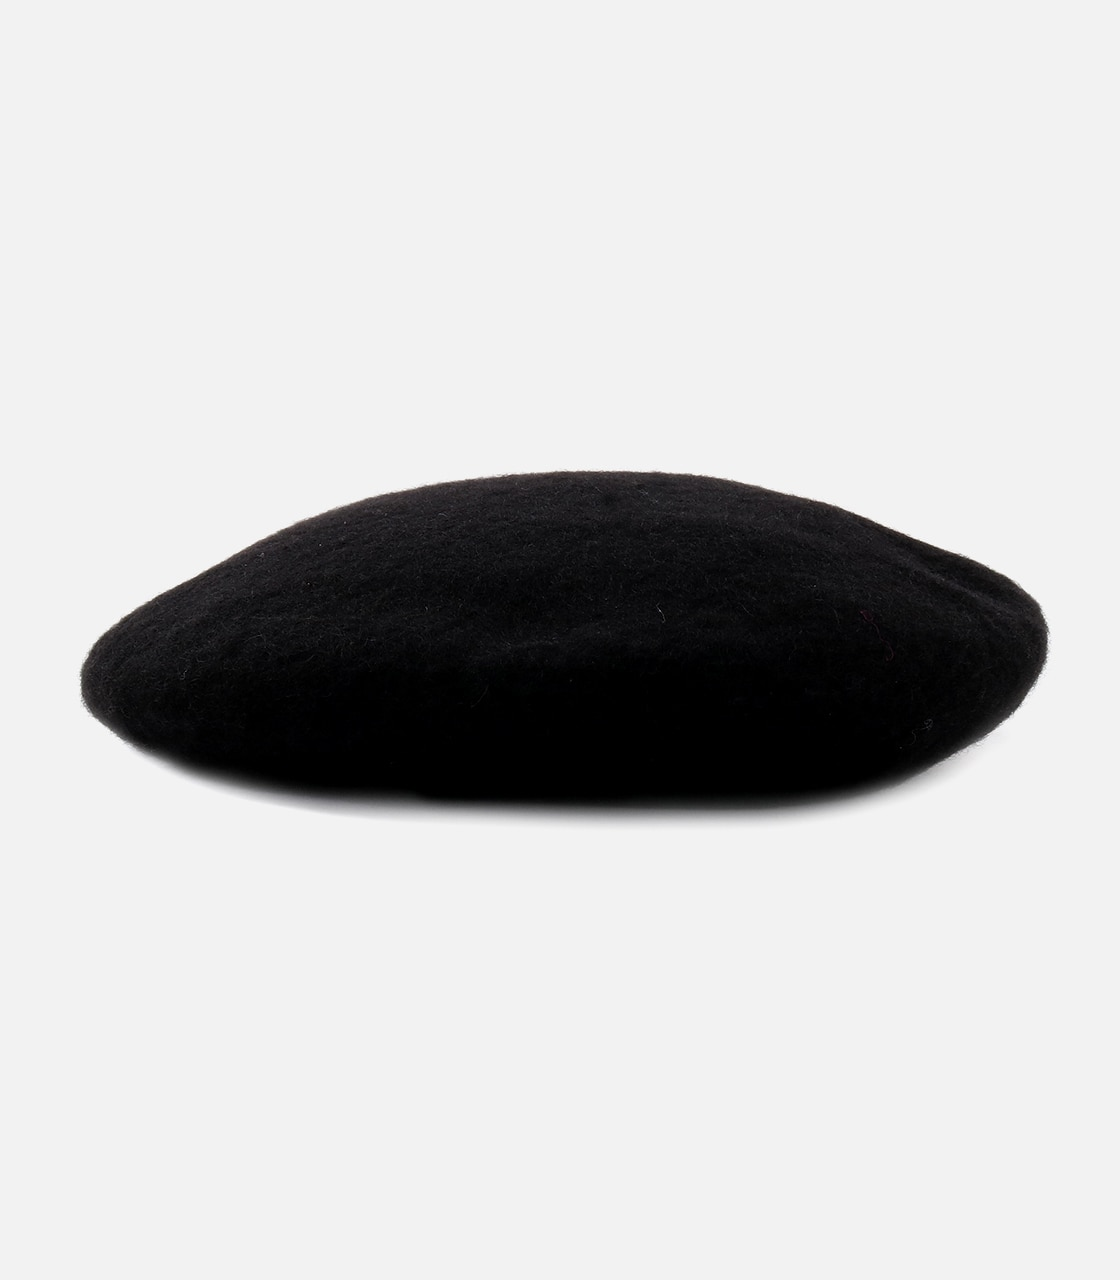 【AZUL BY MOUSSY】BASQUE BERET 詳細画像 BLK 2